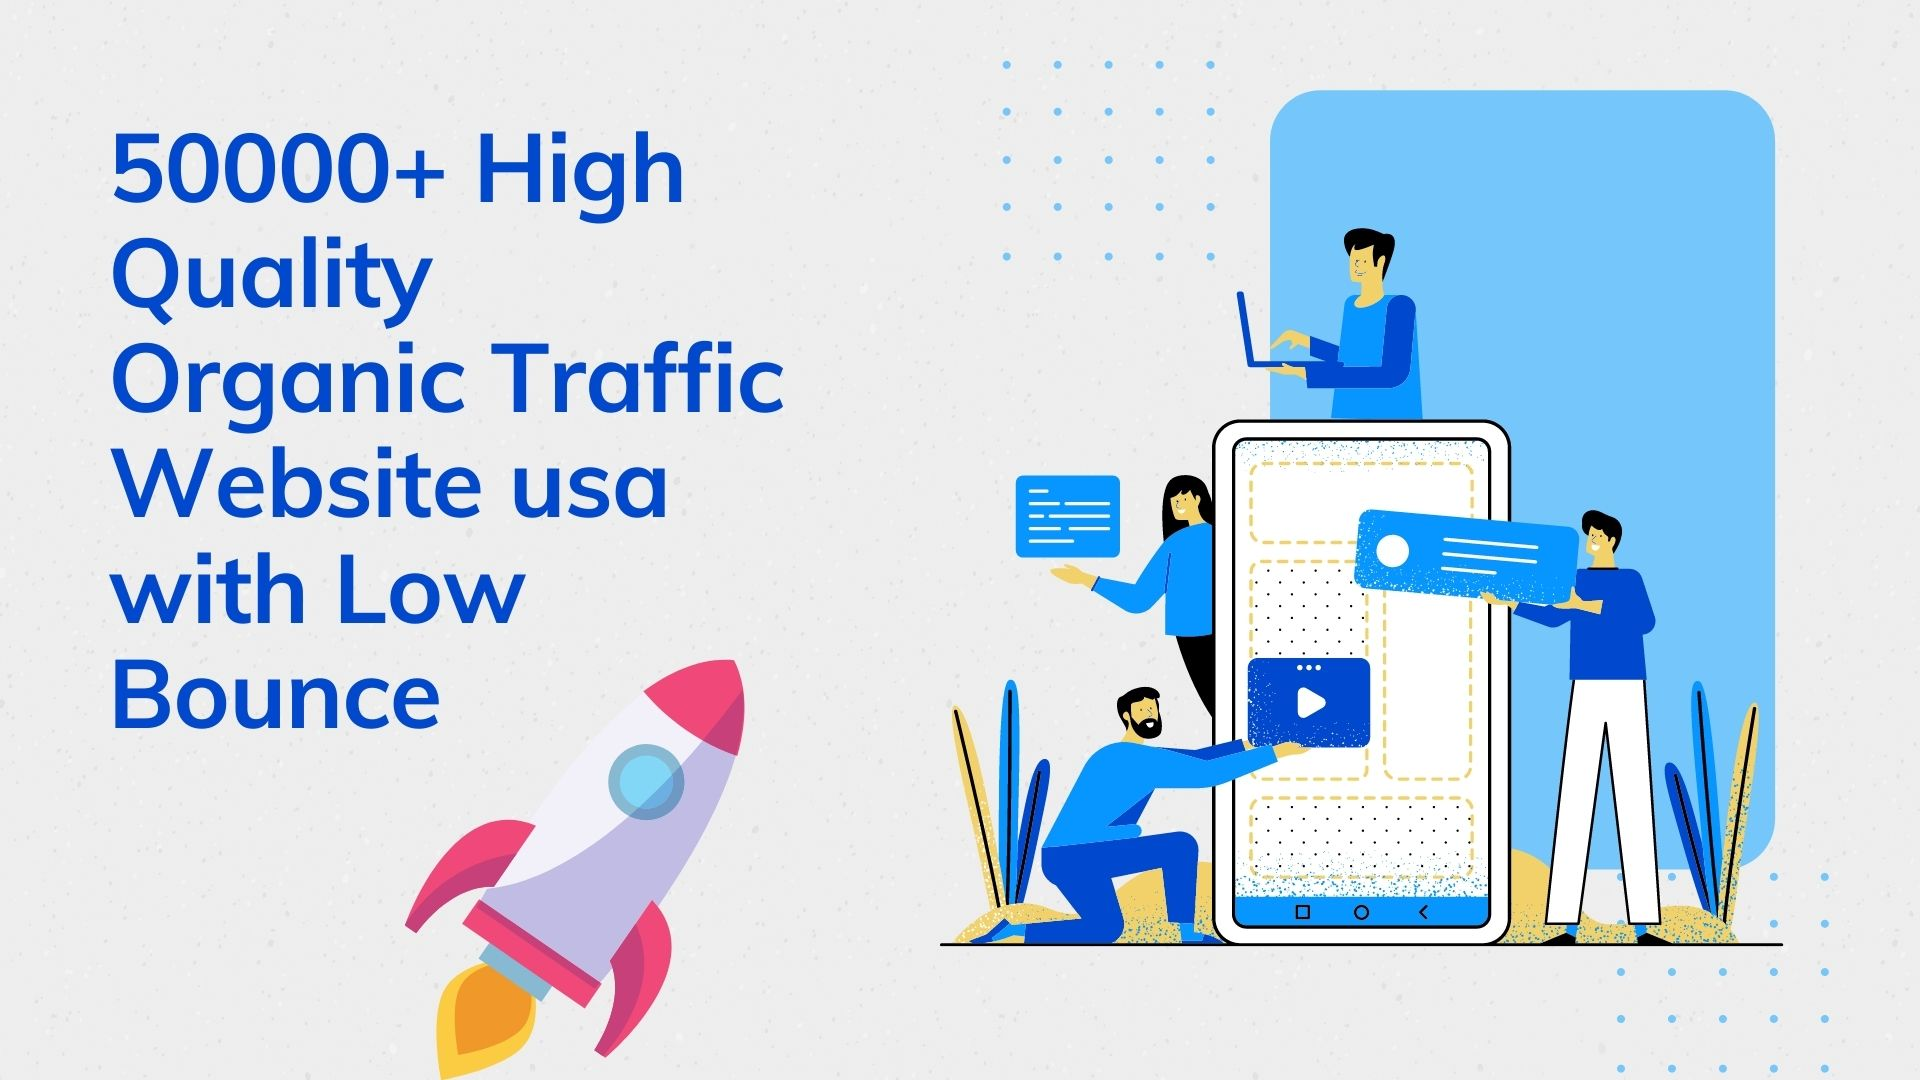 50000+ High Quality Organic Traffic Website usa with Low Bounce Rate